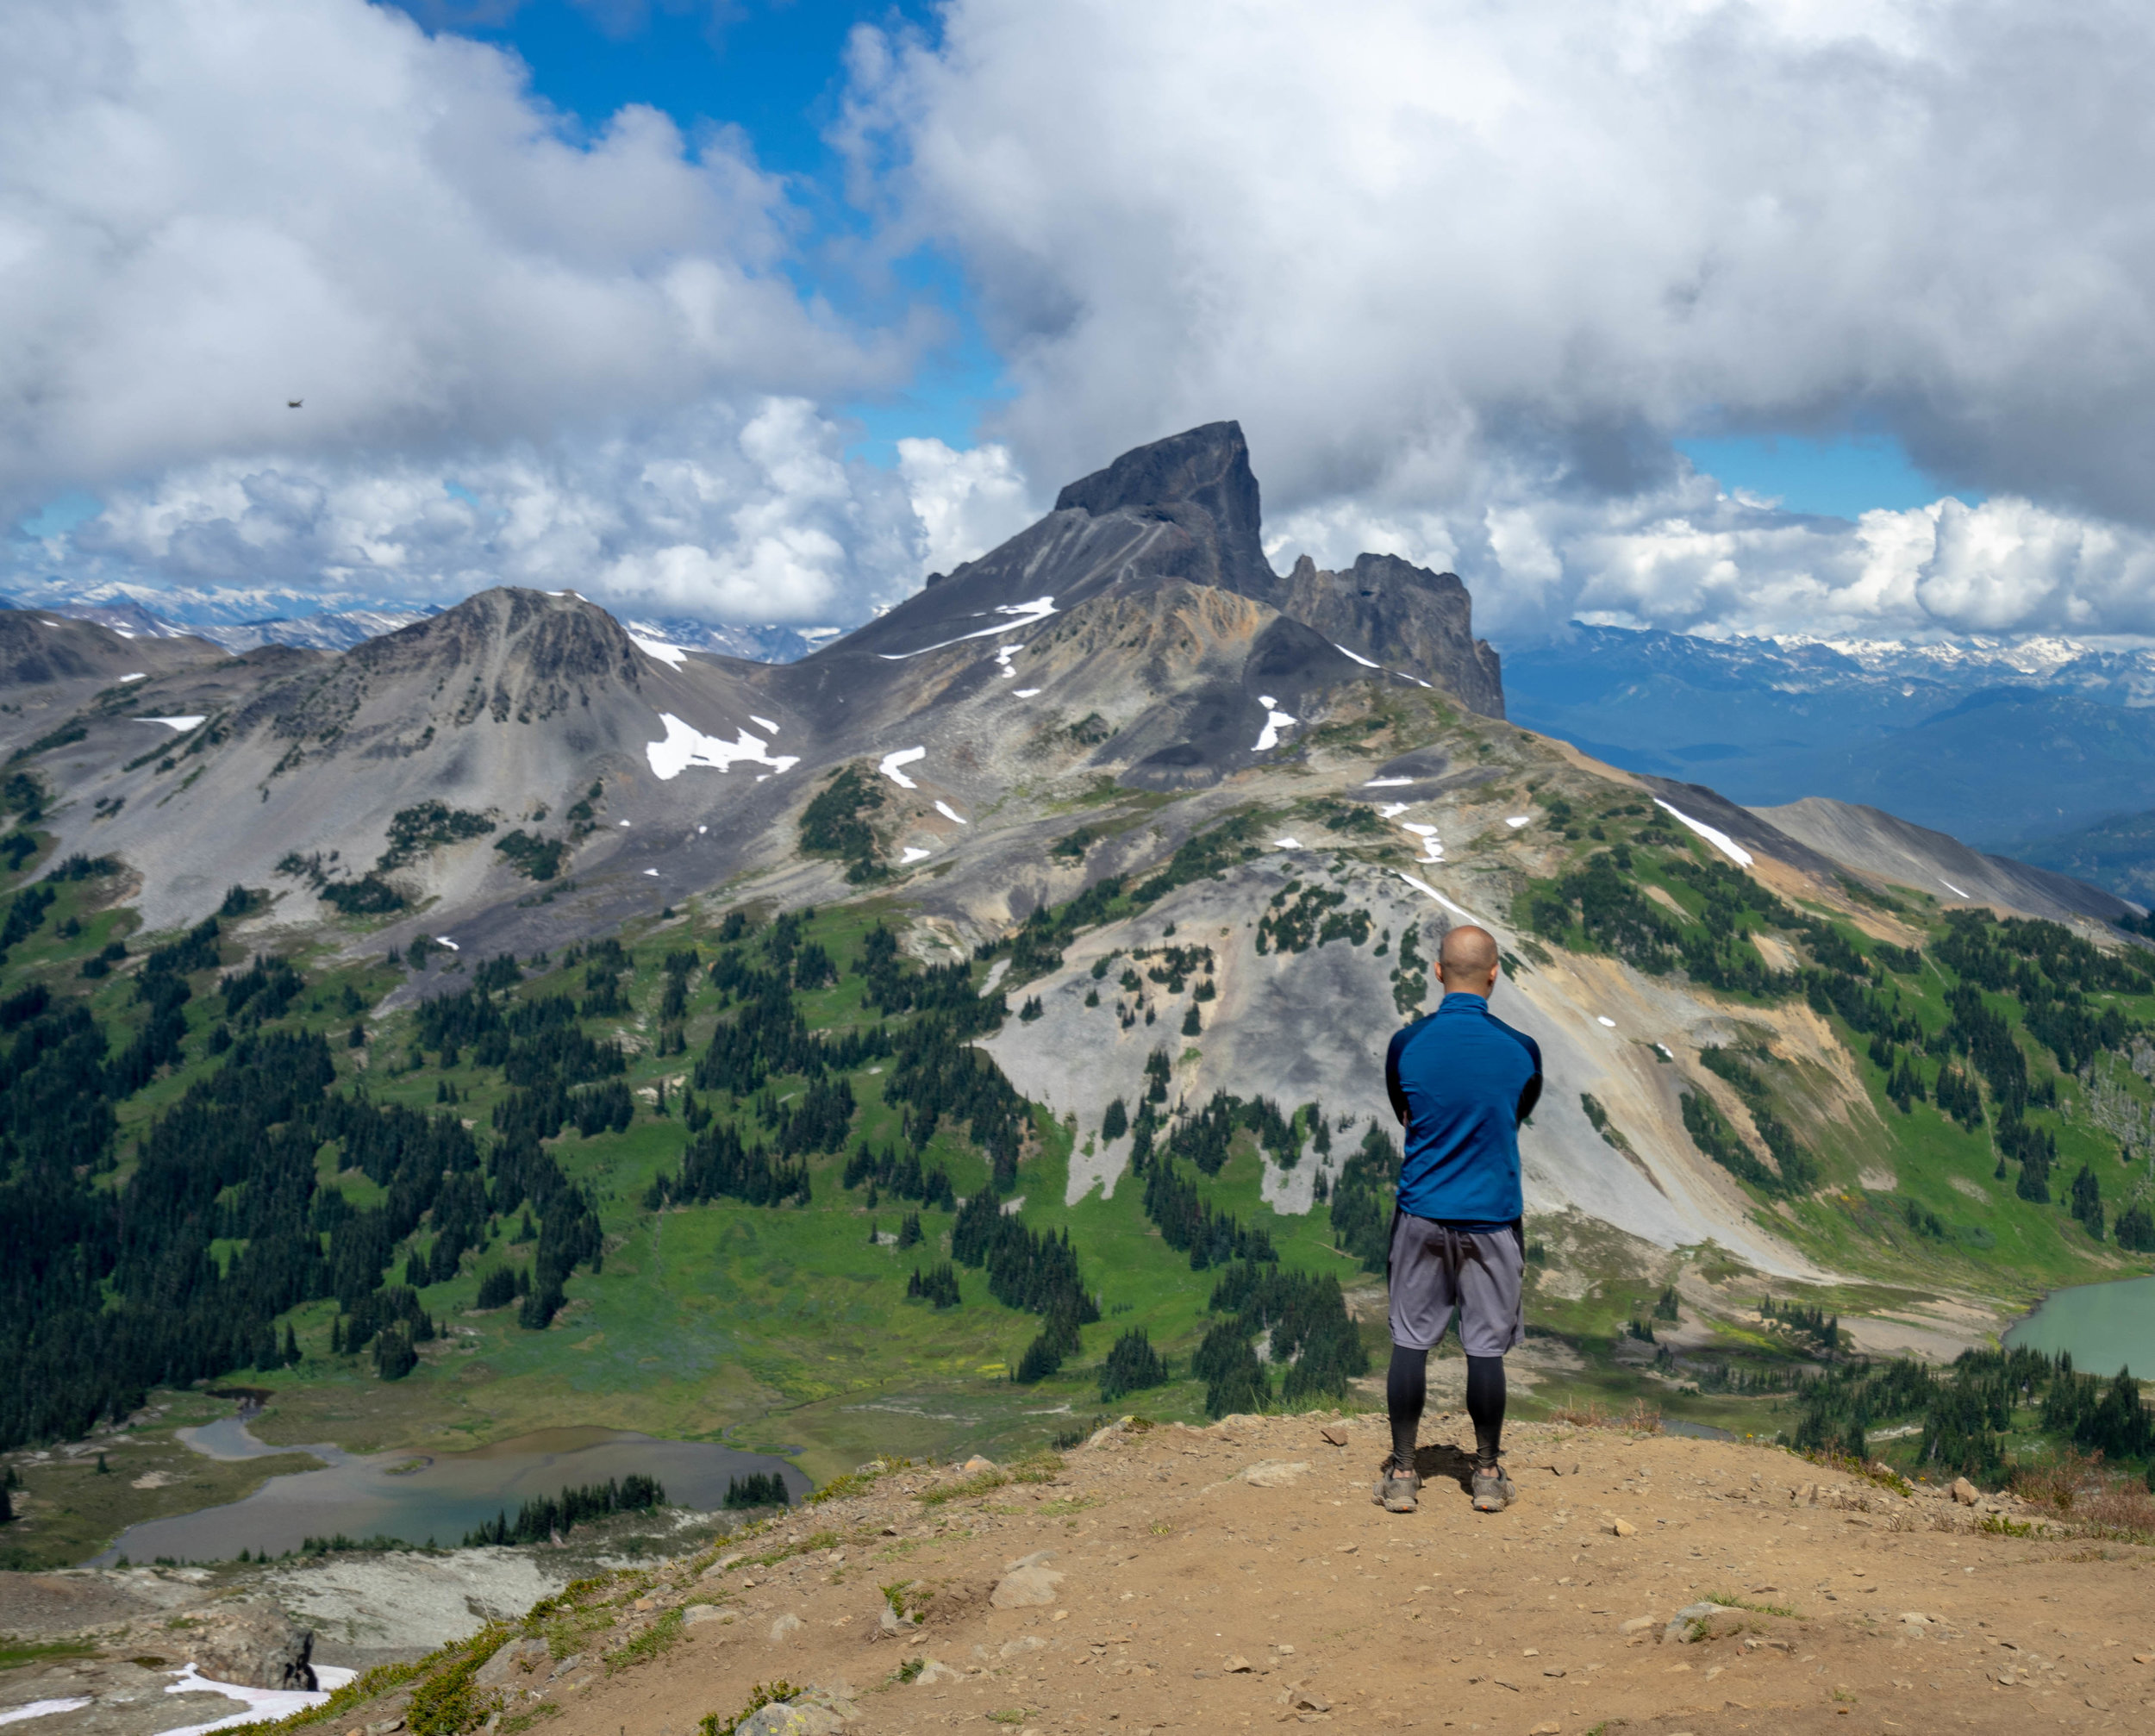 Brian looking out at Black Tusk in the distance.